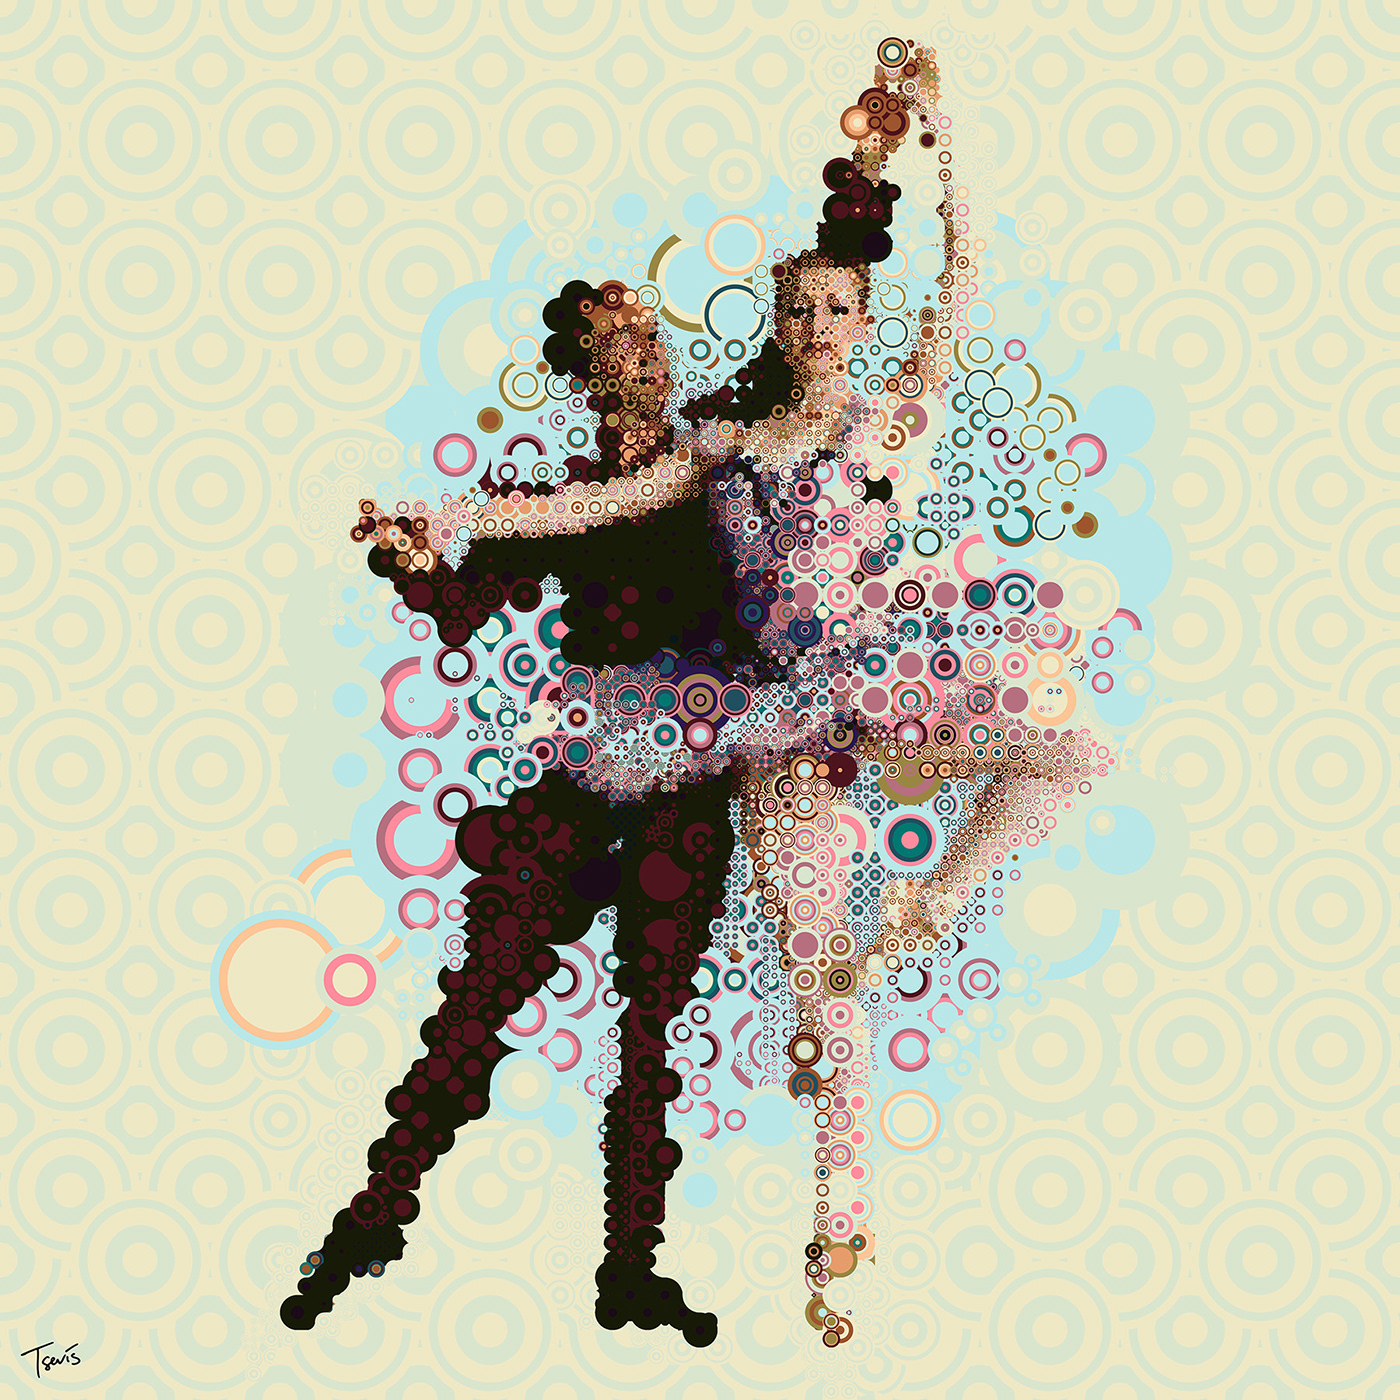 photomosaic,mosaic,arts,festival,culture,commission,romantic,ballet,music,computer graphics